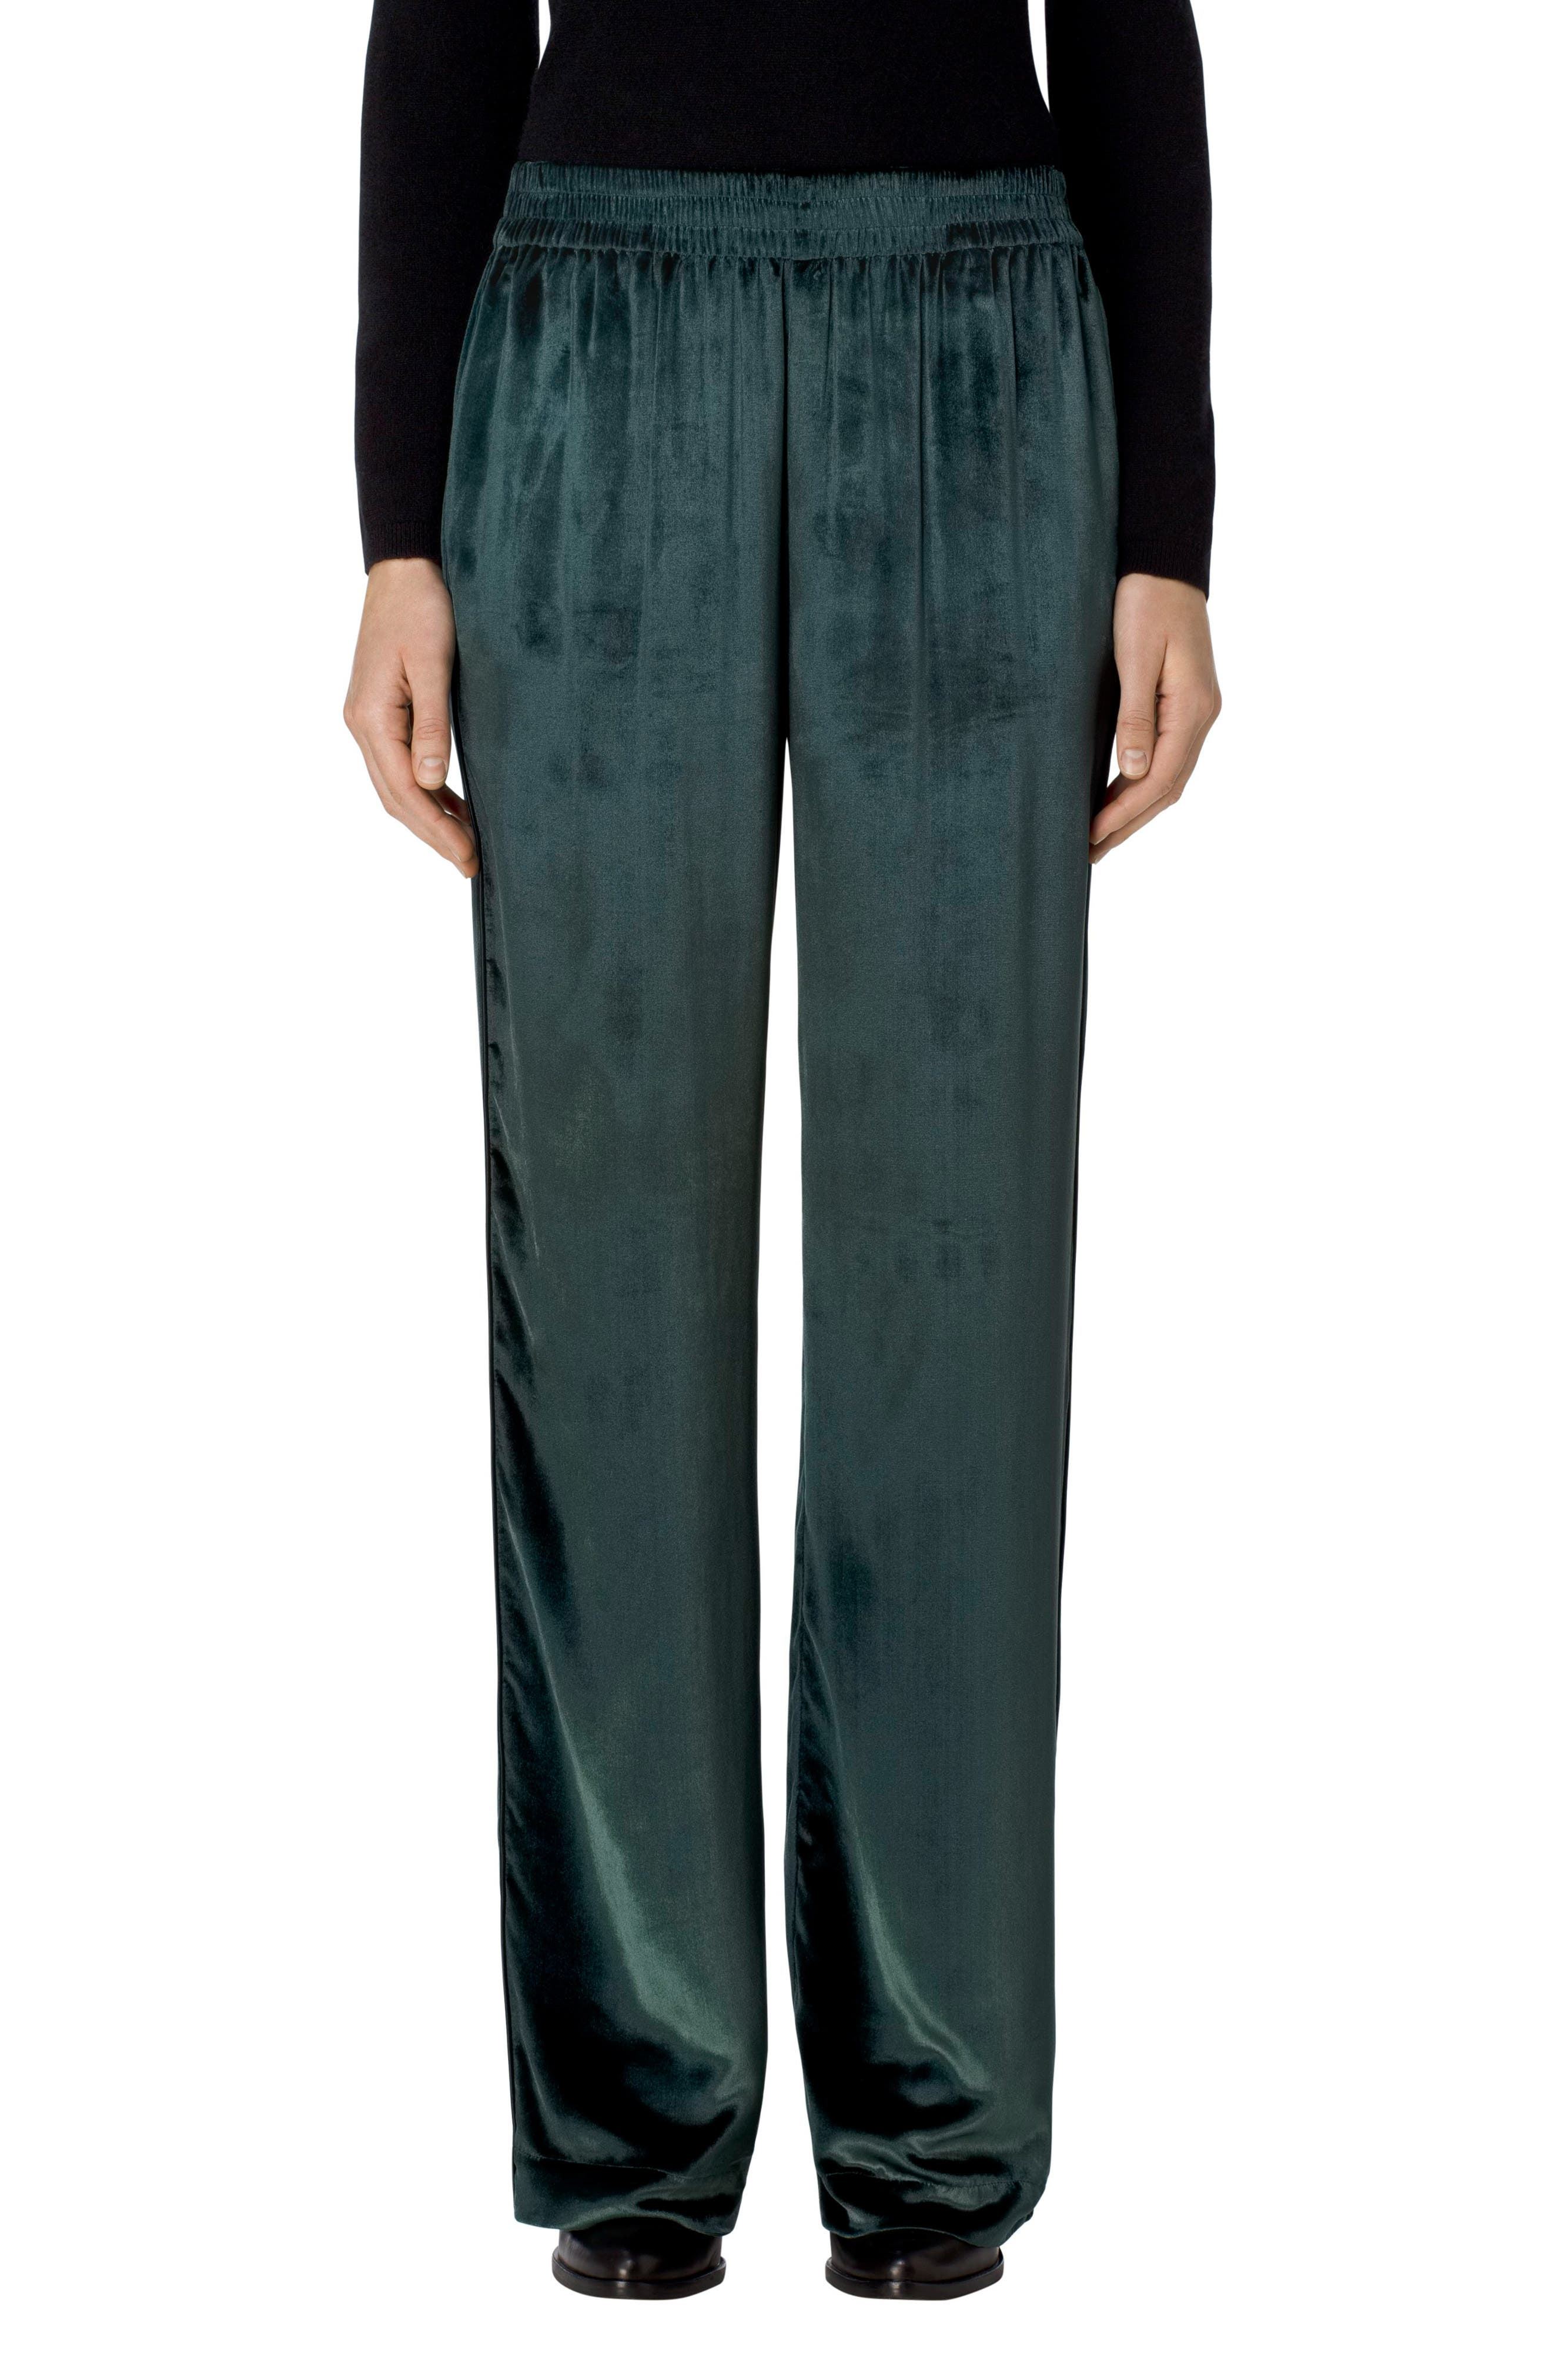 Ardon Velvet Pants,                             Main thumbnail 1, color,                             Moorland